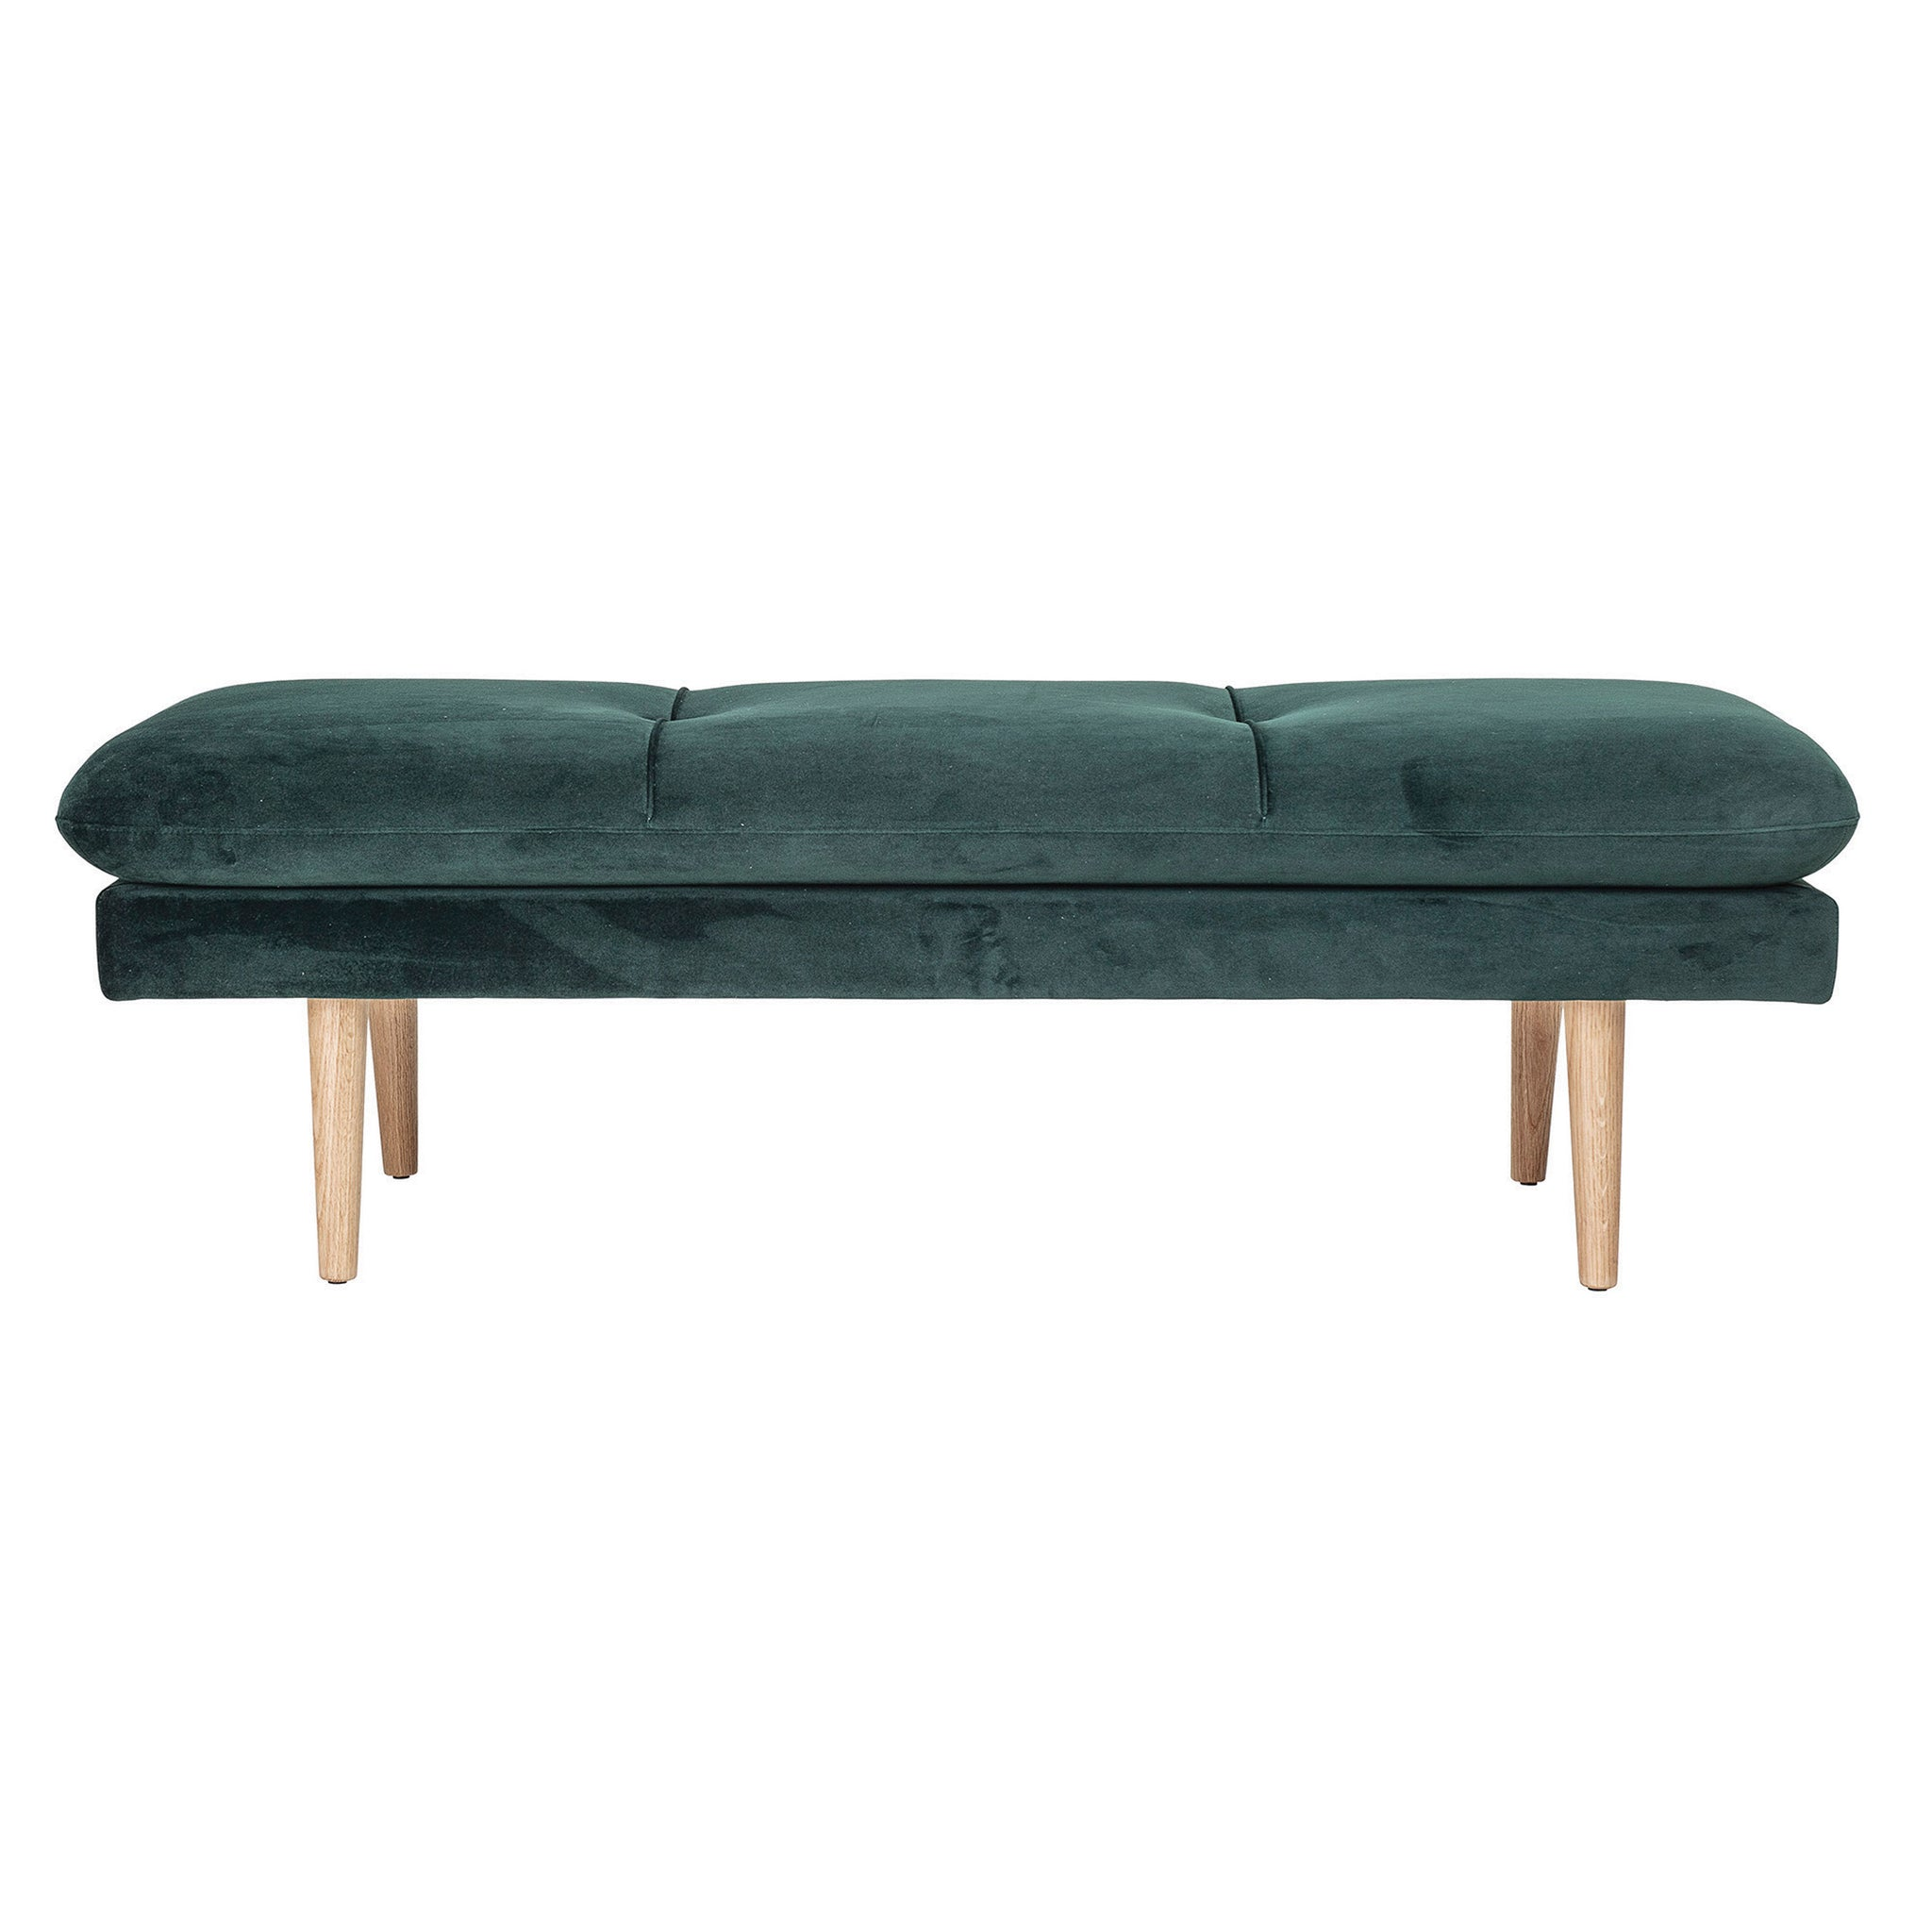 Green Brushed Velvet Bench with Wood Legs